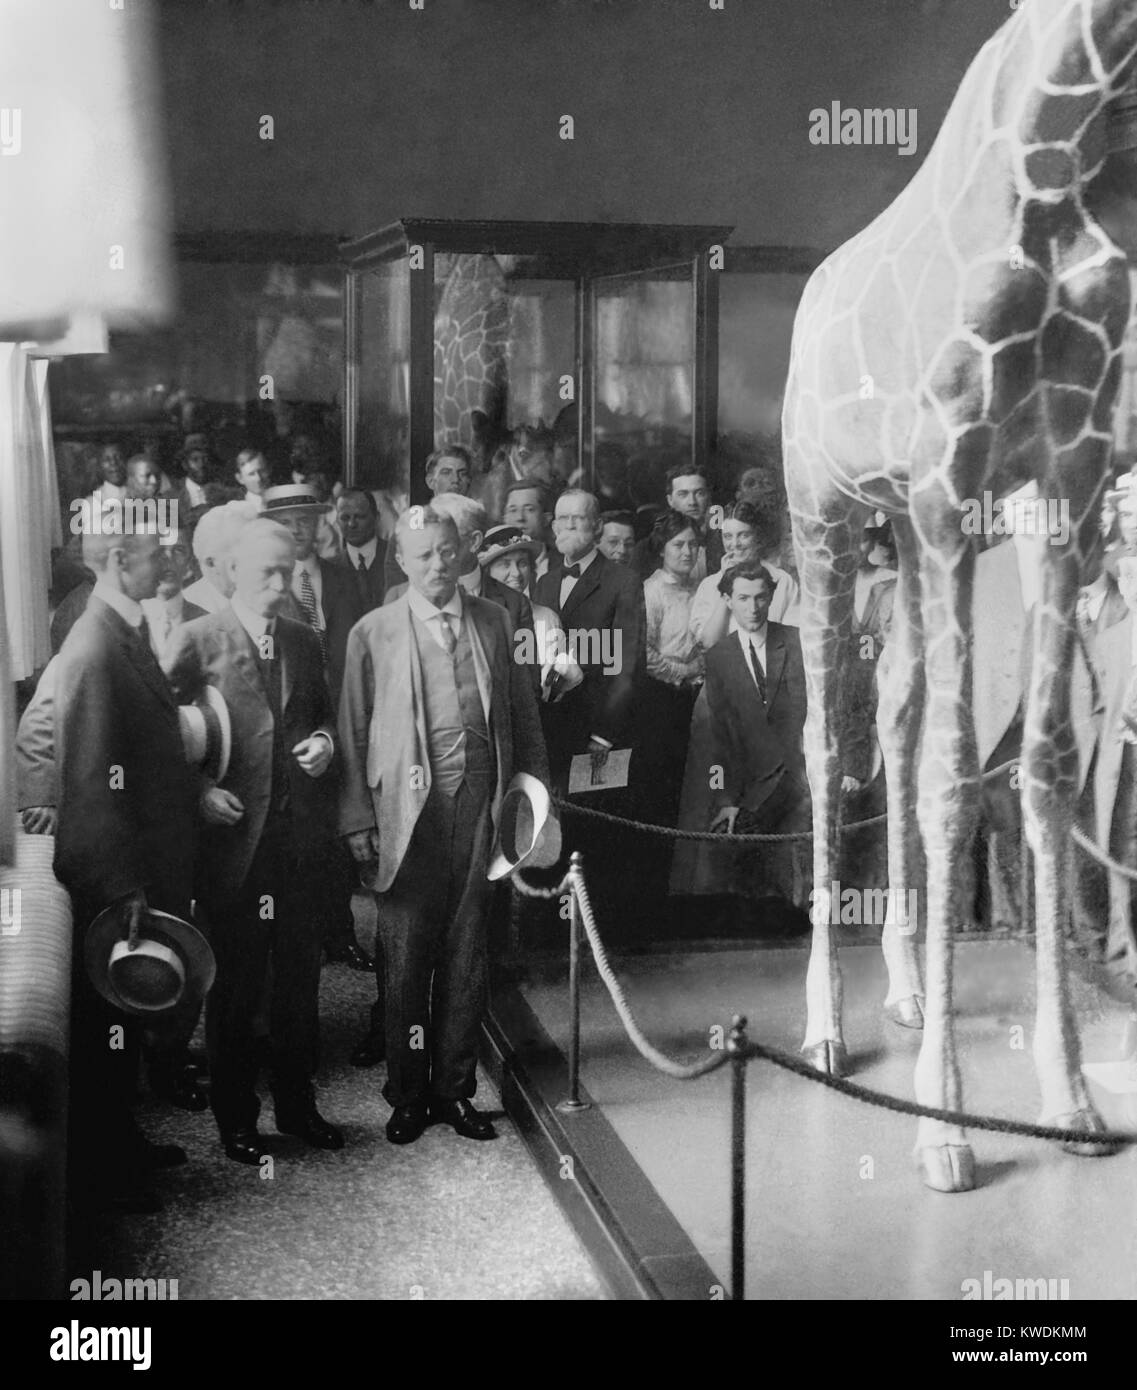 Col. Theodore Roosevelt at a ceremony at National Museum, c. 1914-1917. Now called the Smithsonian Museum of Natural - Stock Image